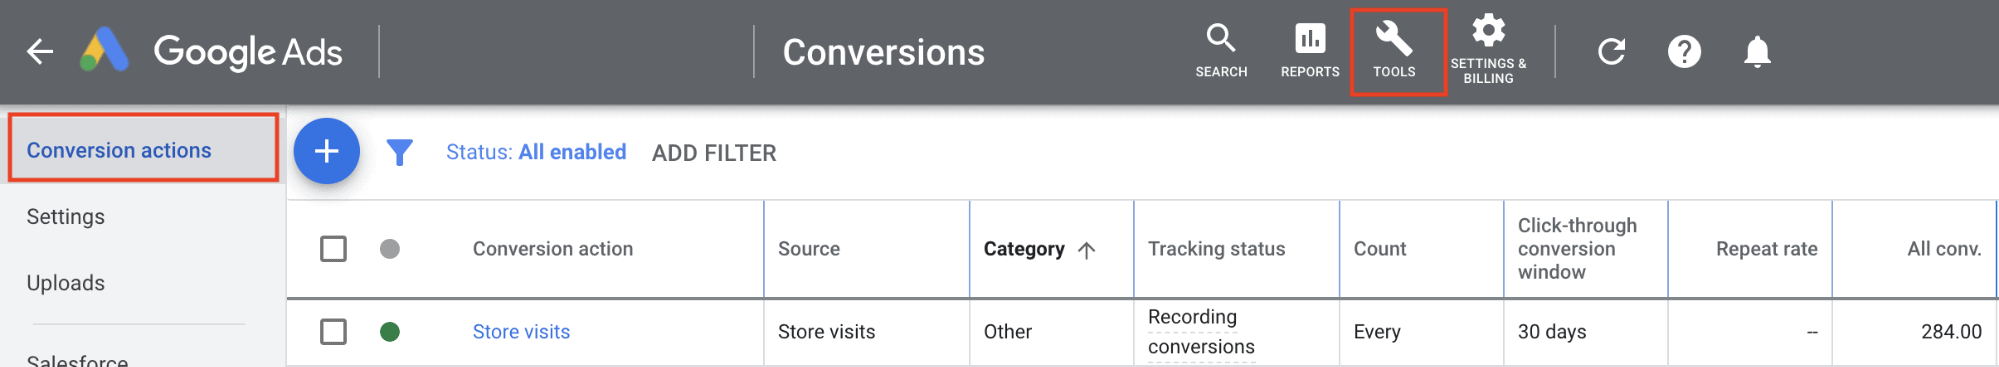 ads conversion actions